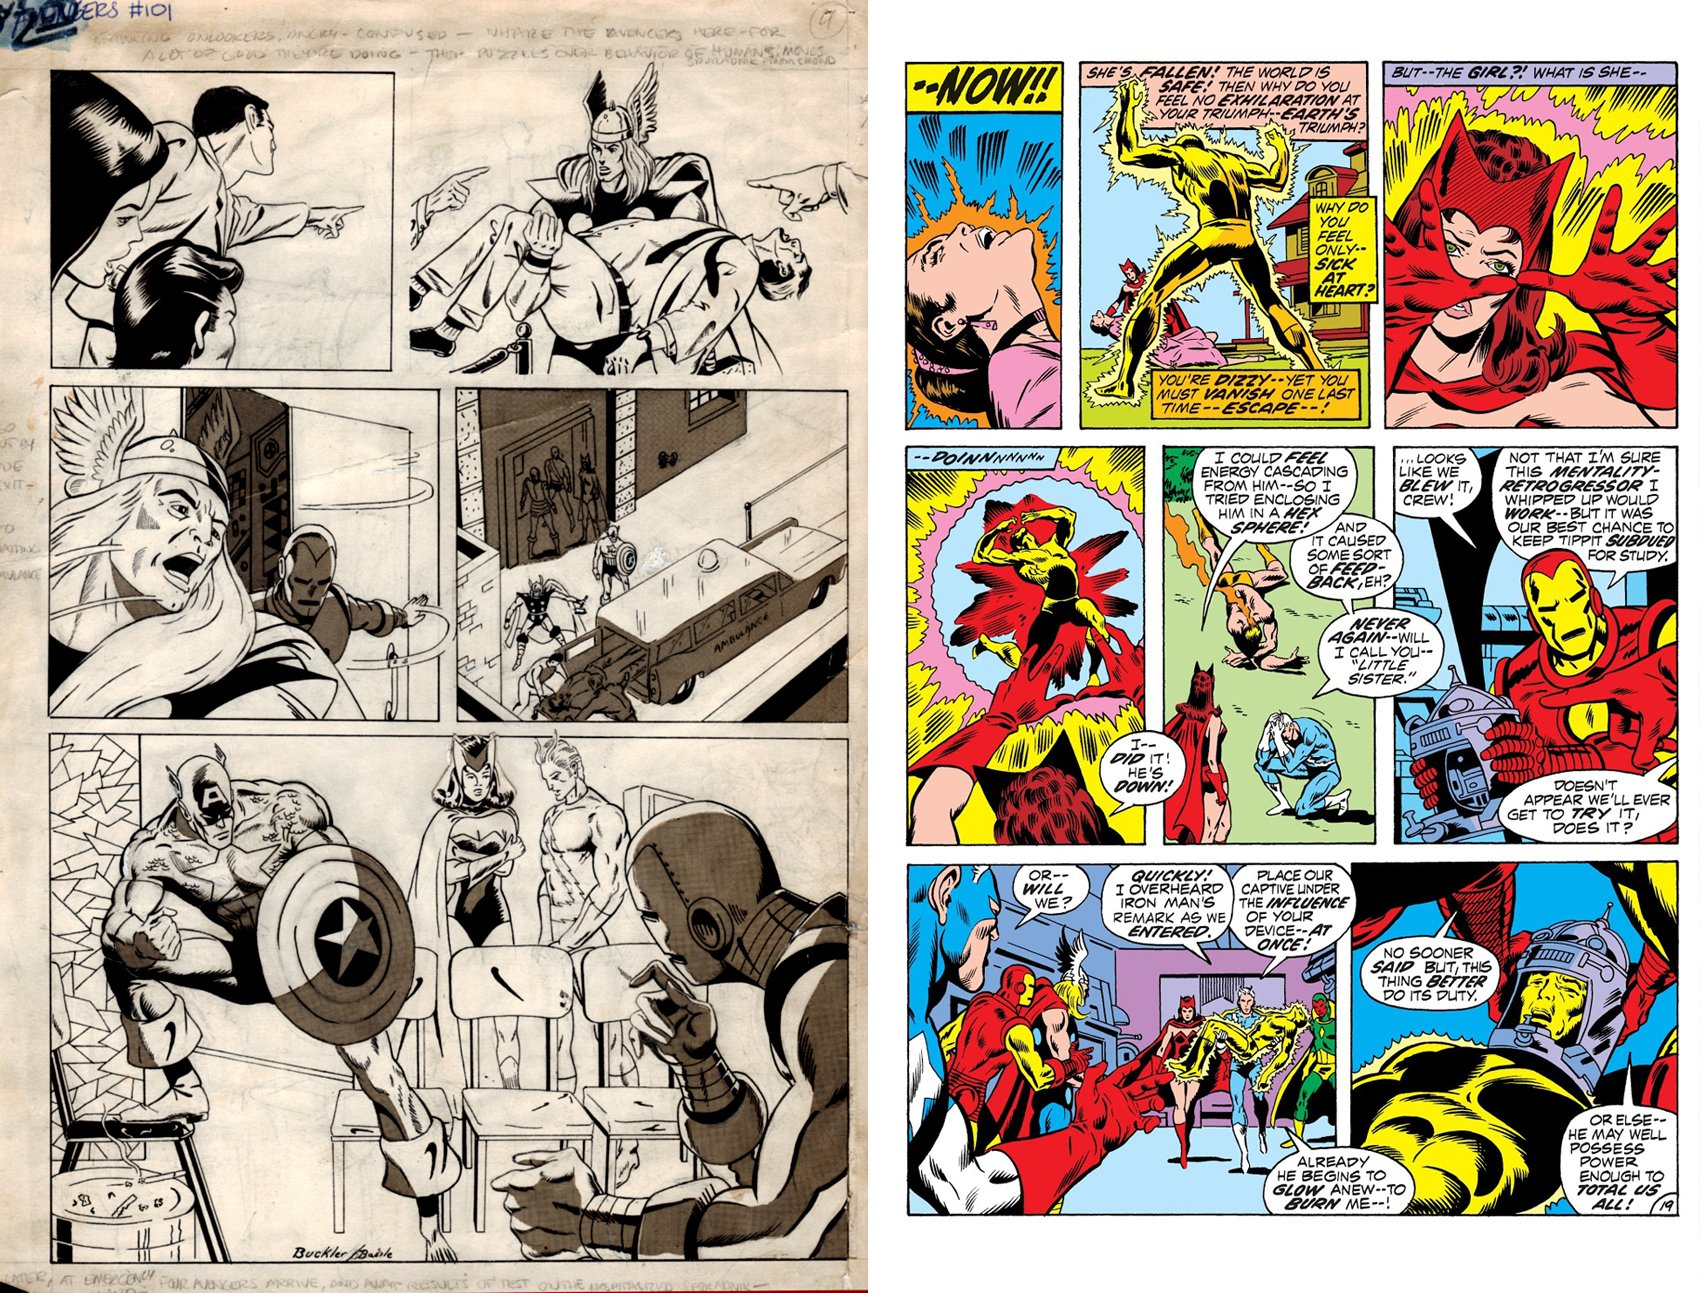 Avengers #101 p19 Unpub Page (SOLD LIVE ON 'DUELING DEALERS OF COMIC ART' EPISODE #9 PODCAST ON 3-24-2021 (RE-WATCH OUR LIVE ART SELLING PODCAST HERE!)